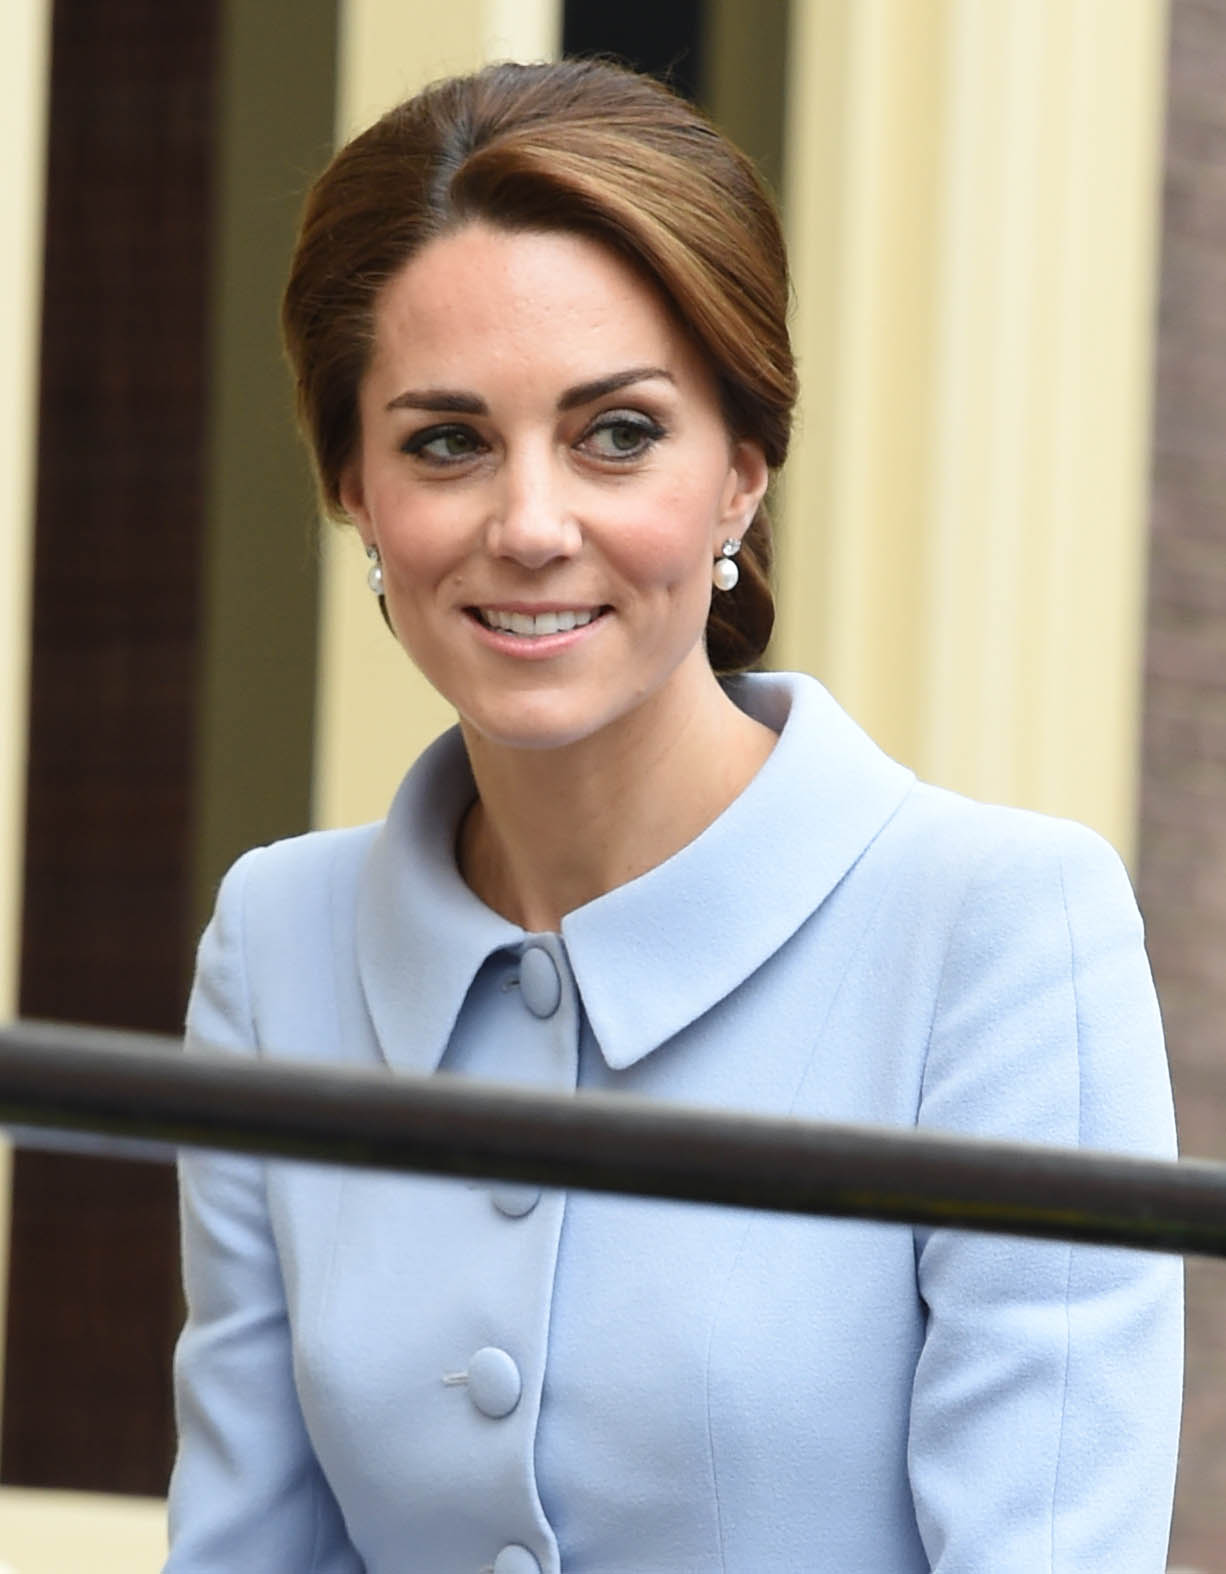 The Duchess of Cambridge visits The Netherlands for a day of official engagements in The Hague and Rotterdam.